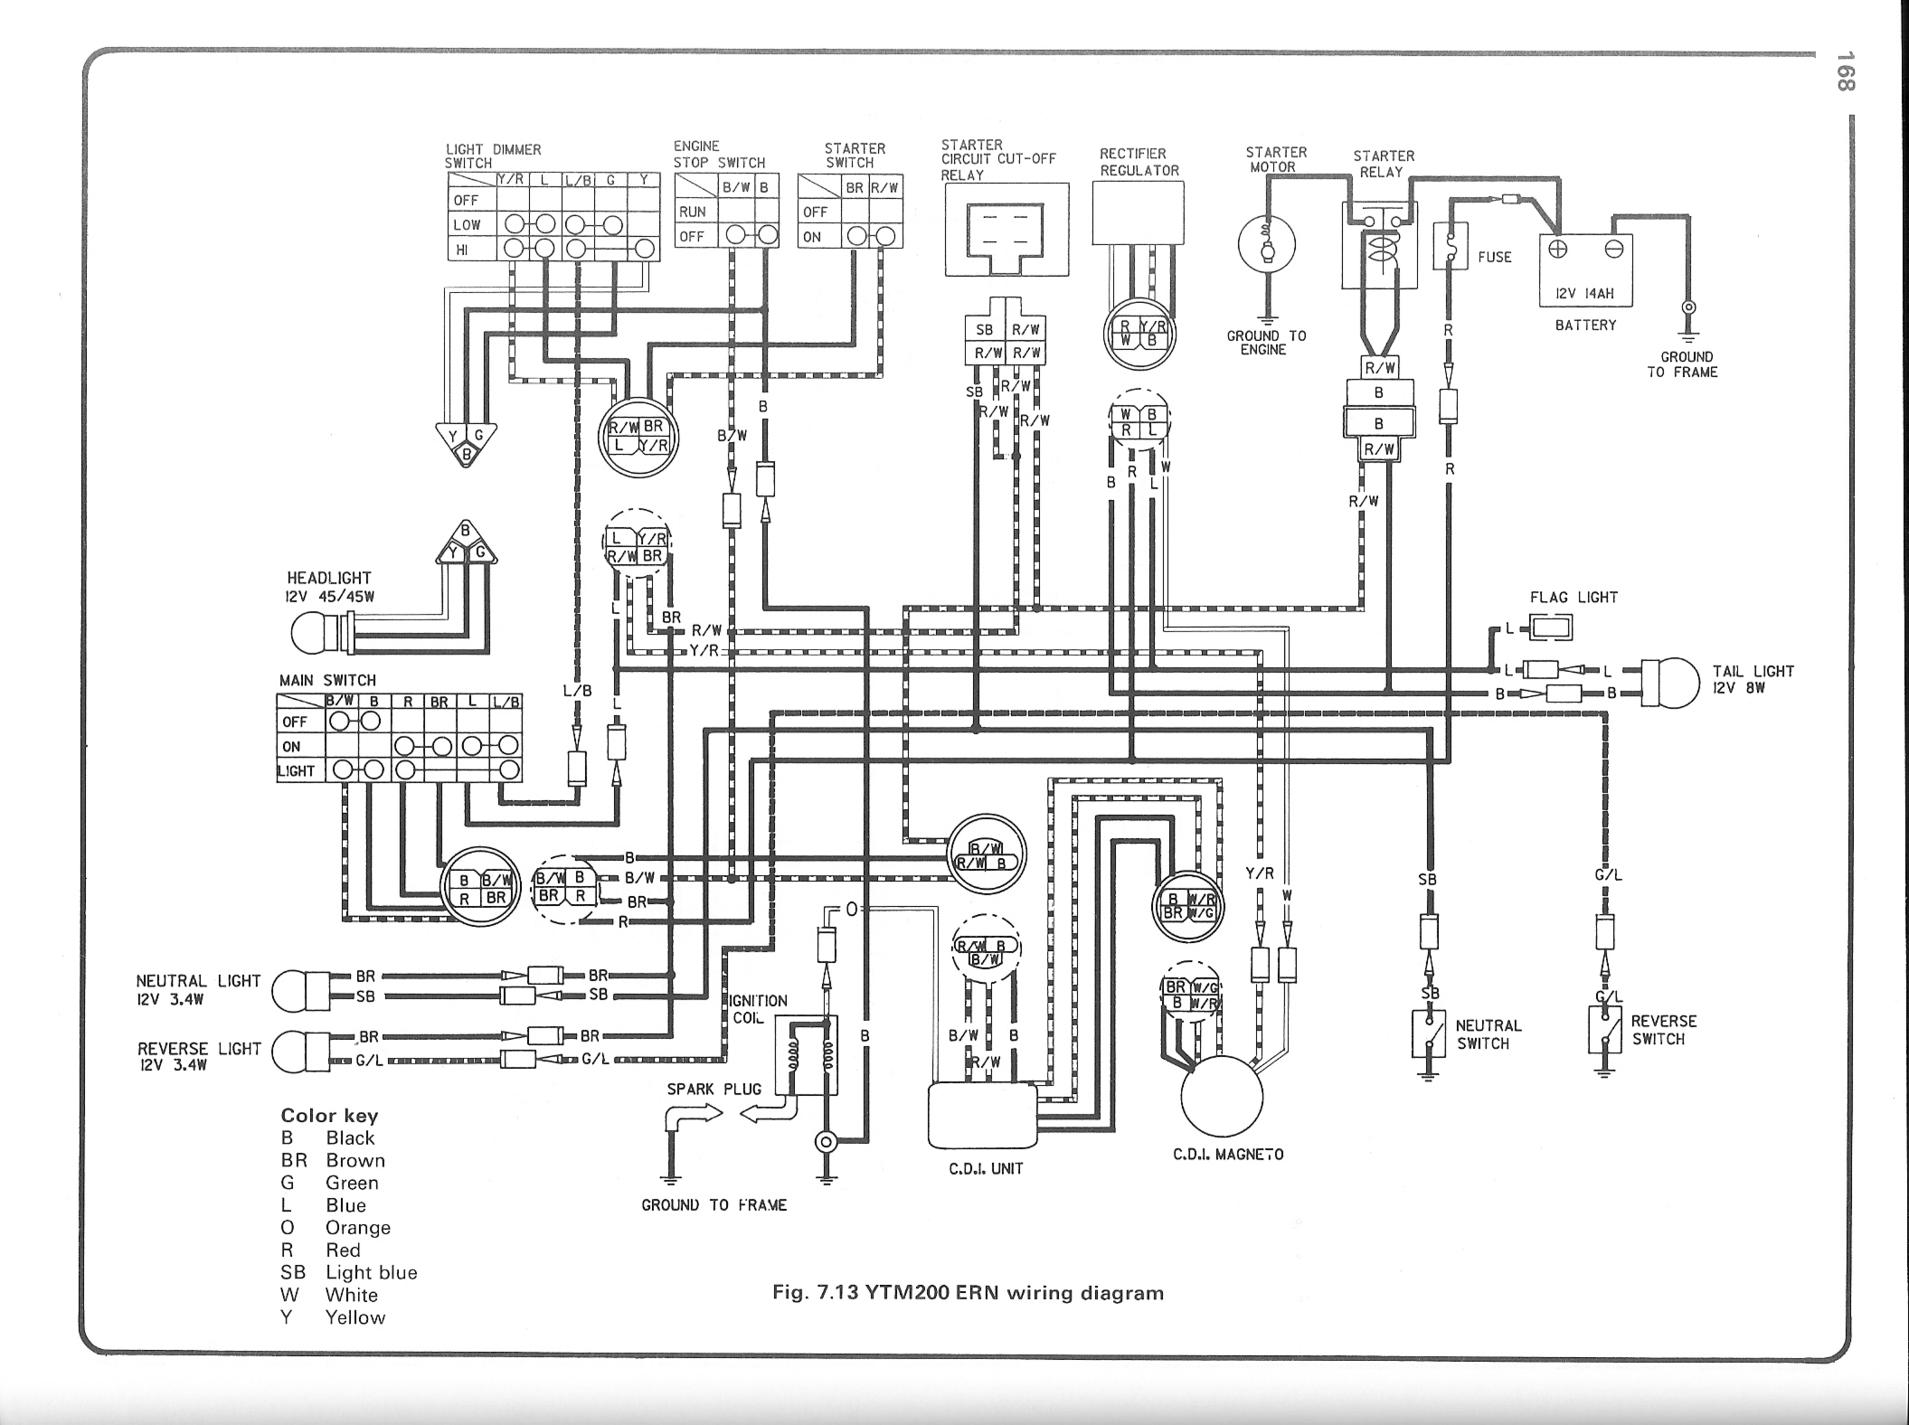 kawasaki bayou 250 wiring harness 2005 kawasaki bayou 250 wiring diagram 3wheeler world - yamaha ytm200ern three-wheeler wiring diagram